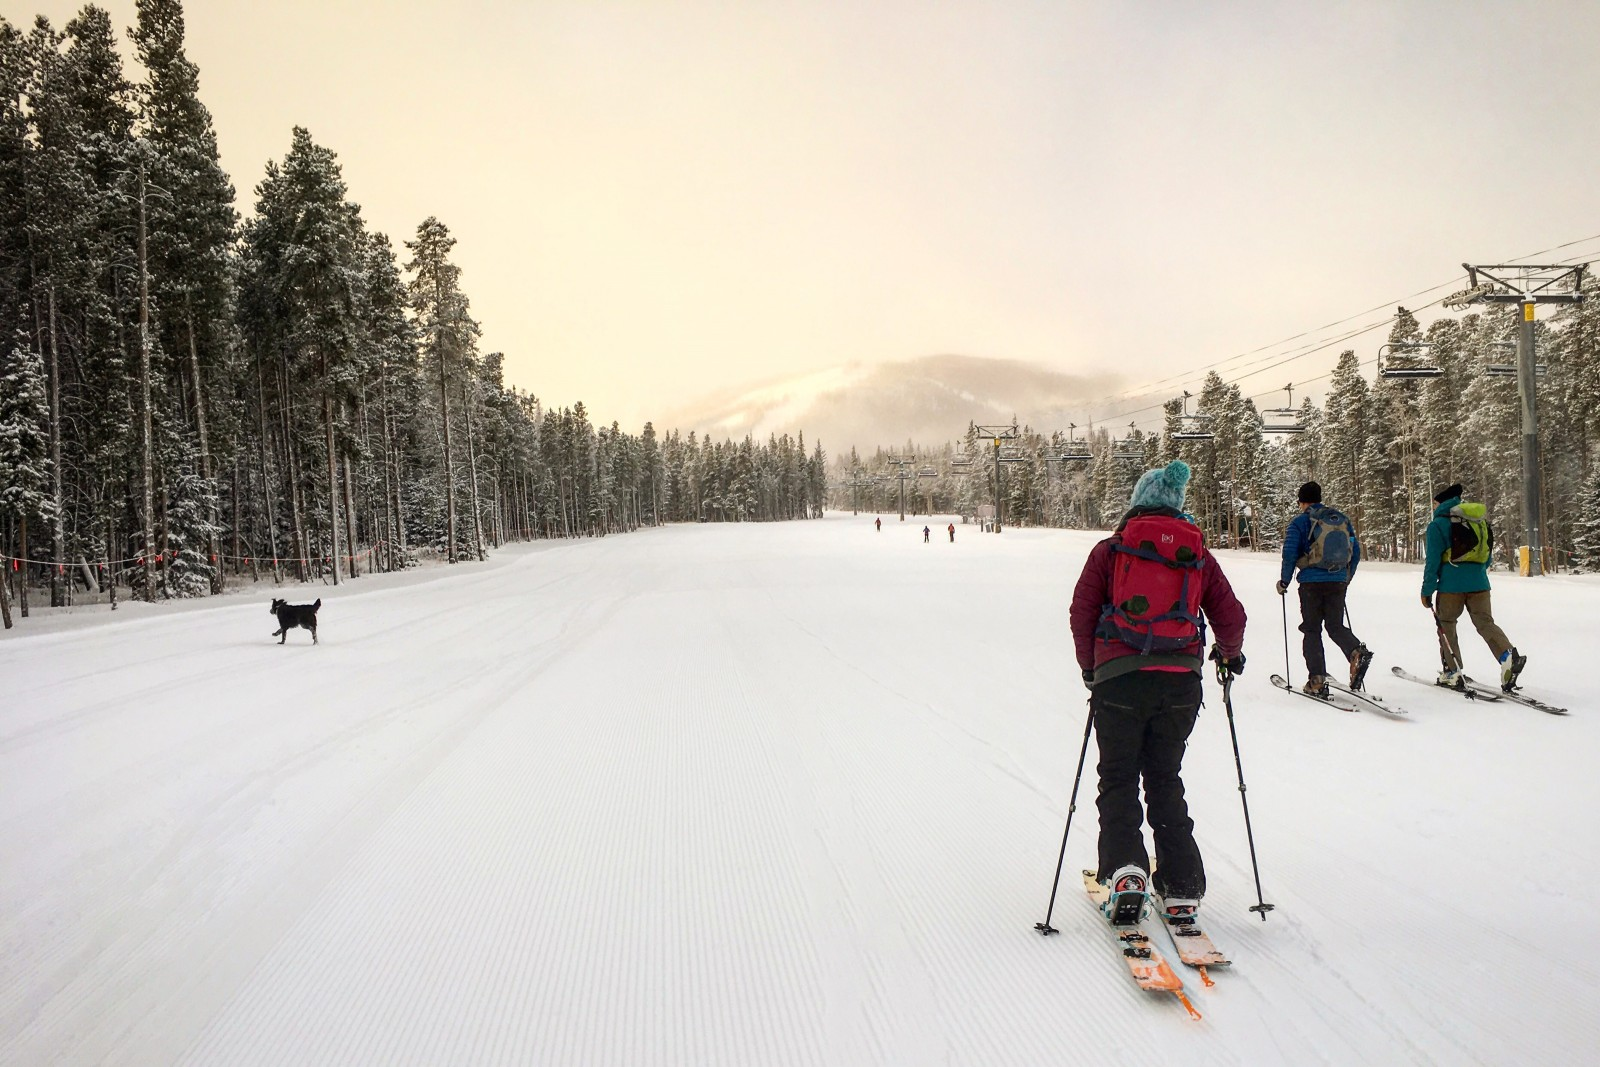 Adventure & Après: Nine Winter Pairings in Breckenridge